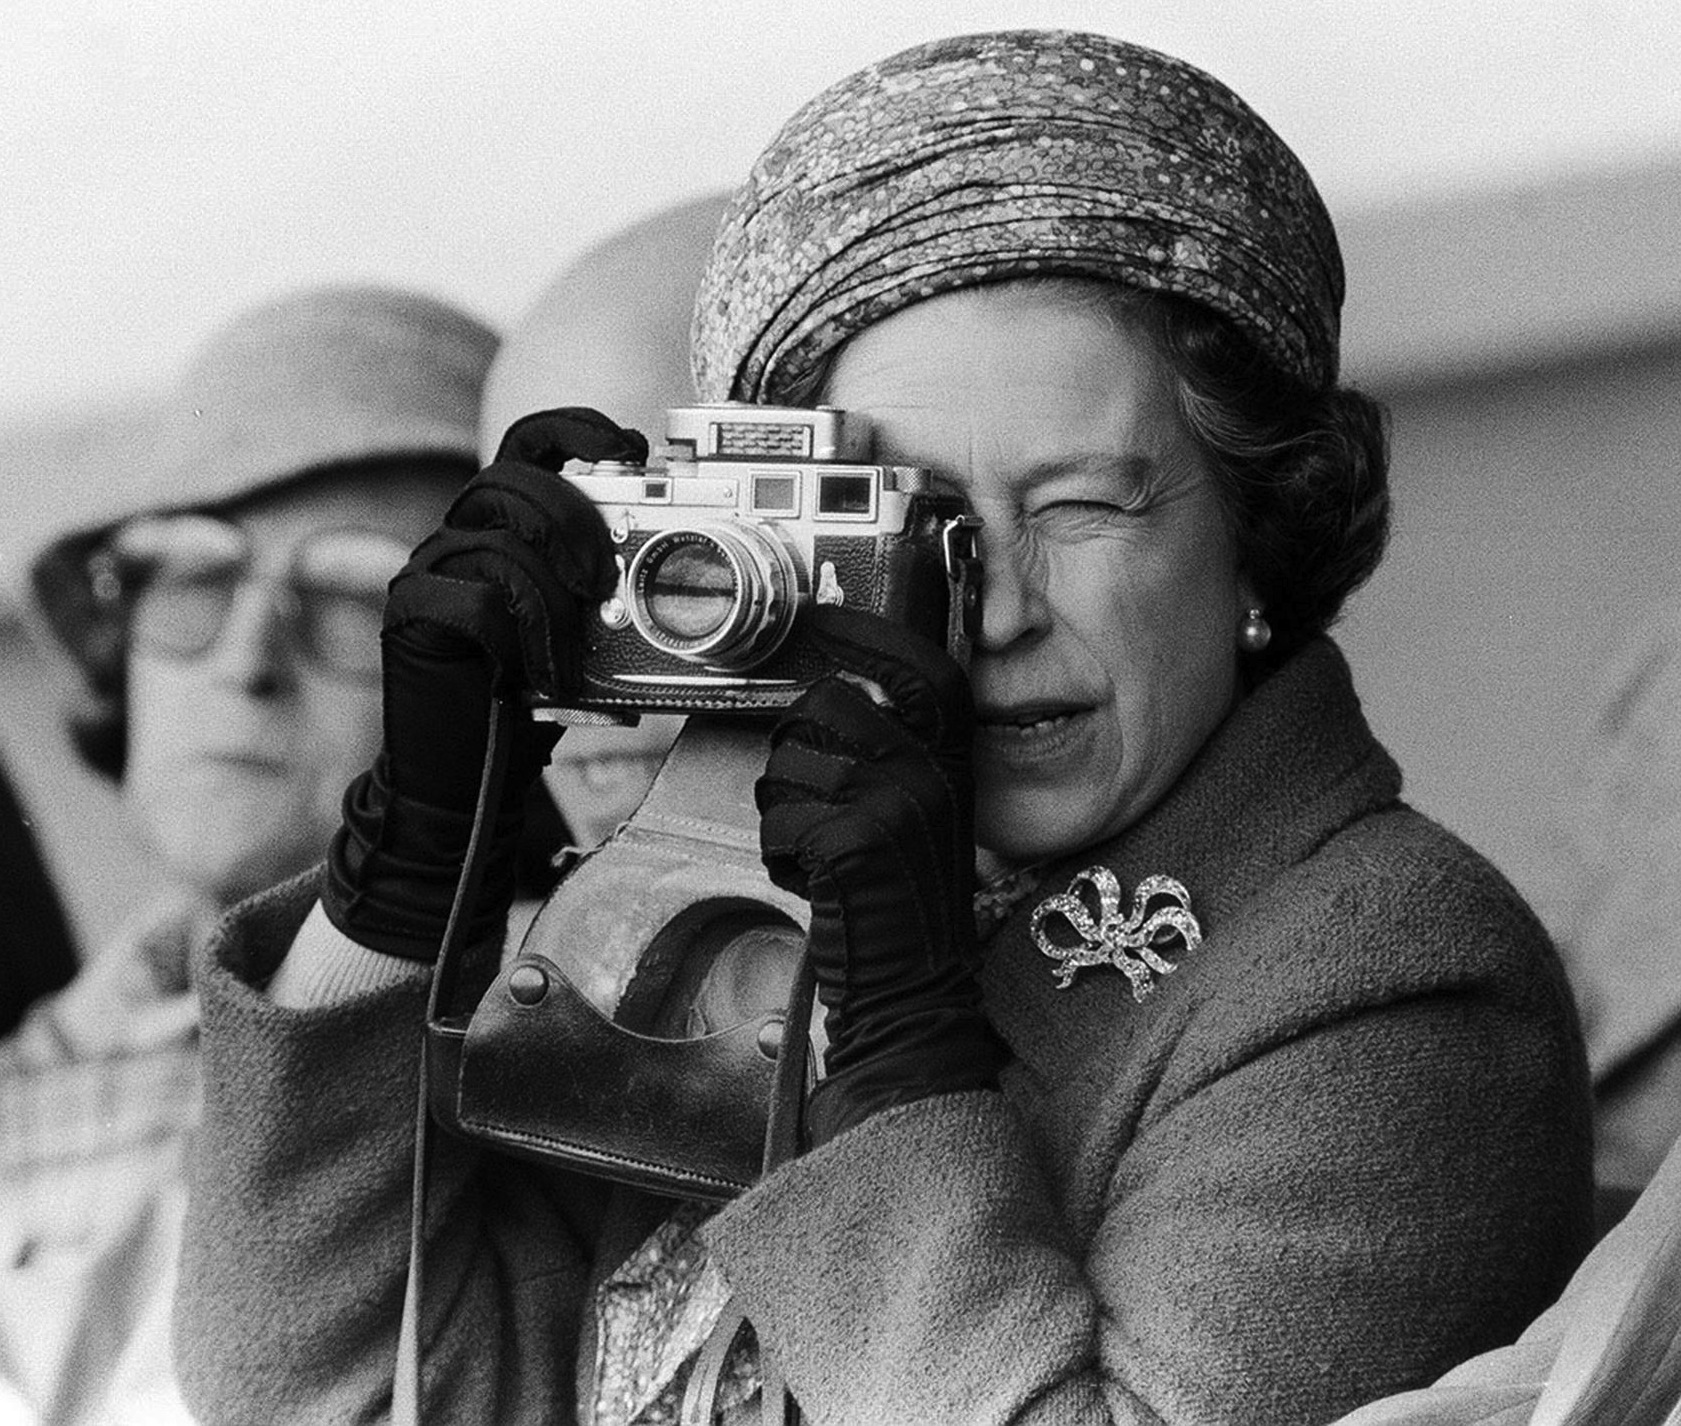 17th+May+1981+-+Her+Majesty+Queen+Elizabeth+II+taking+a+picture+at+the+Royal+Windsor+Horse+Trials